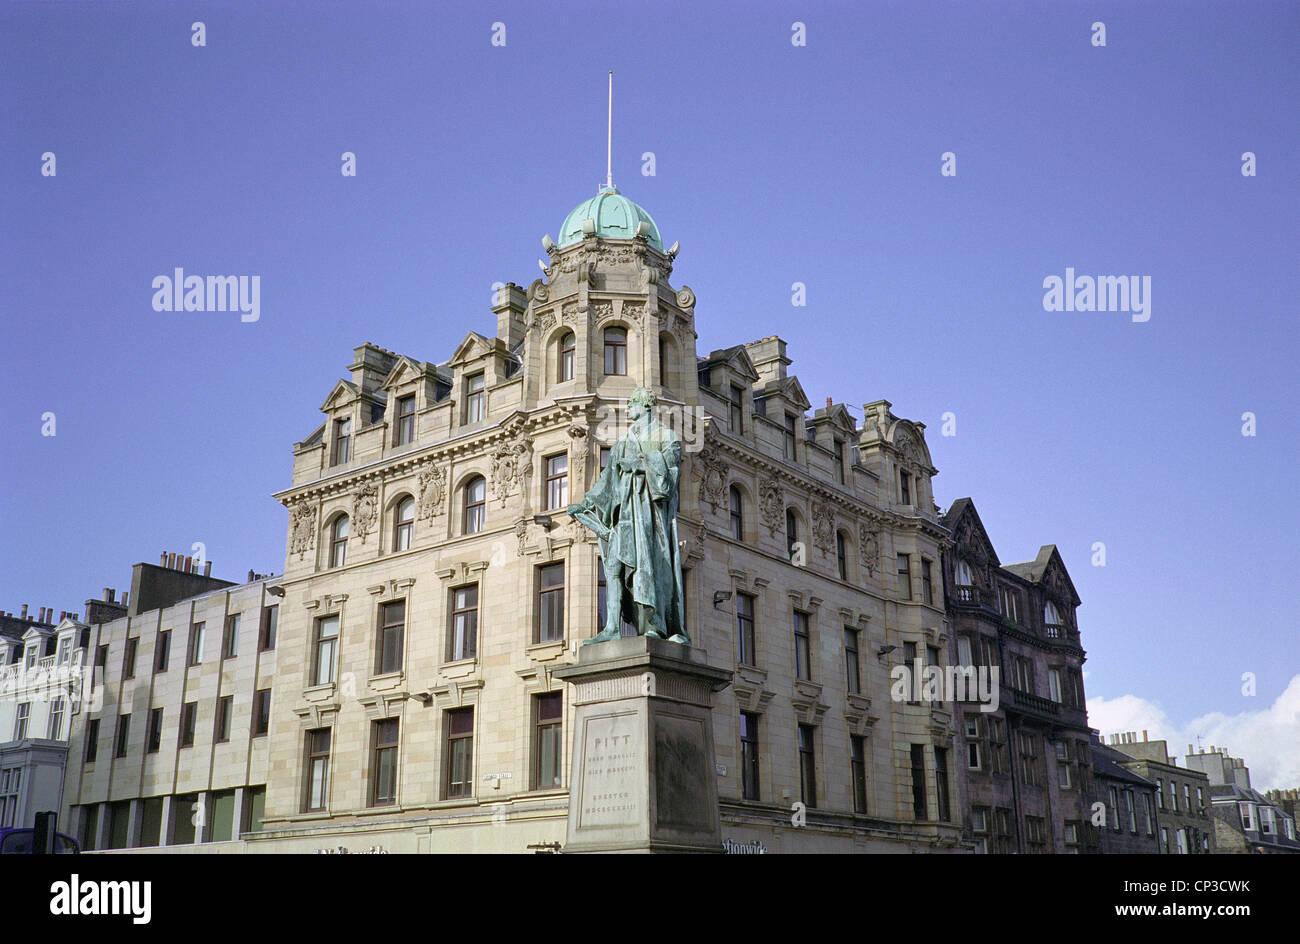 Statue of William Pitt the Younger (Britain's Youngest Prime Minister), George Street, New Town, Edinburgh, - Stock Image